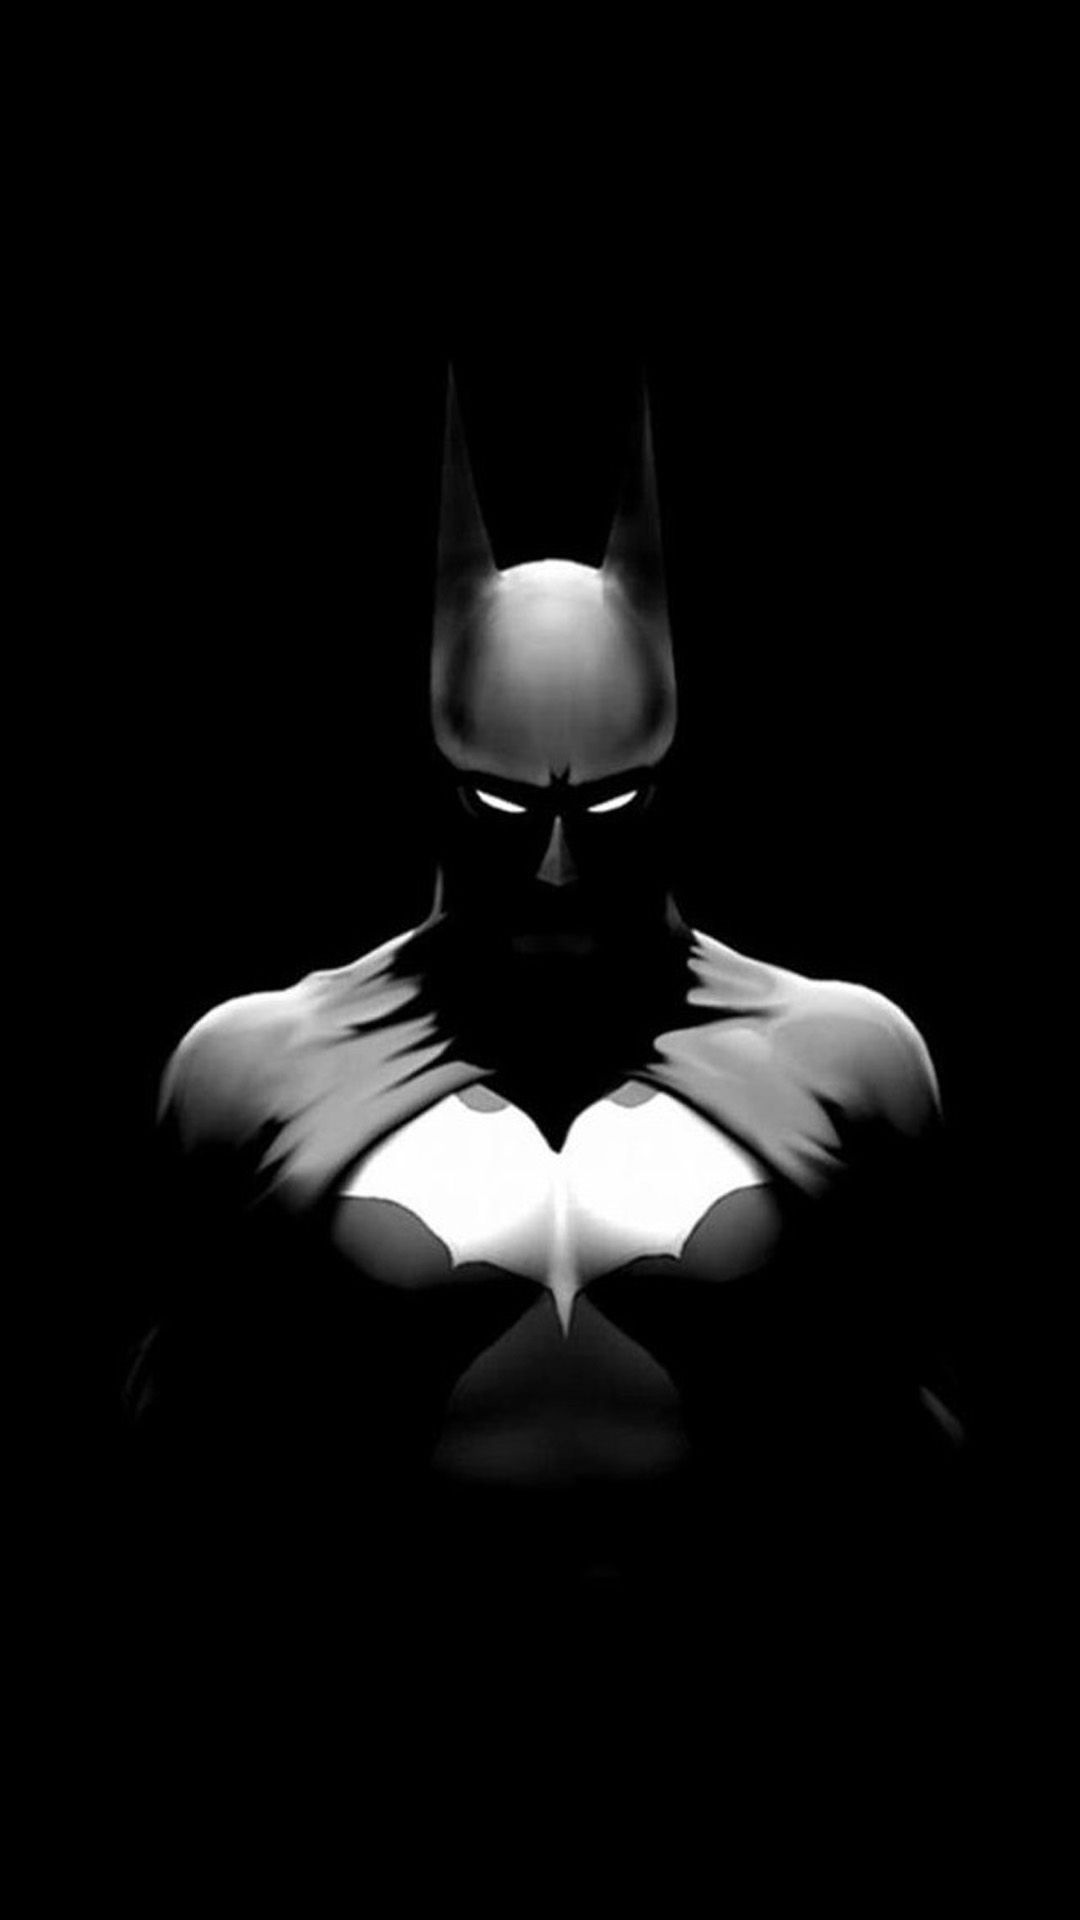 Batman In Dark Background iPhone 8 Wallpapers (With images